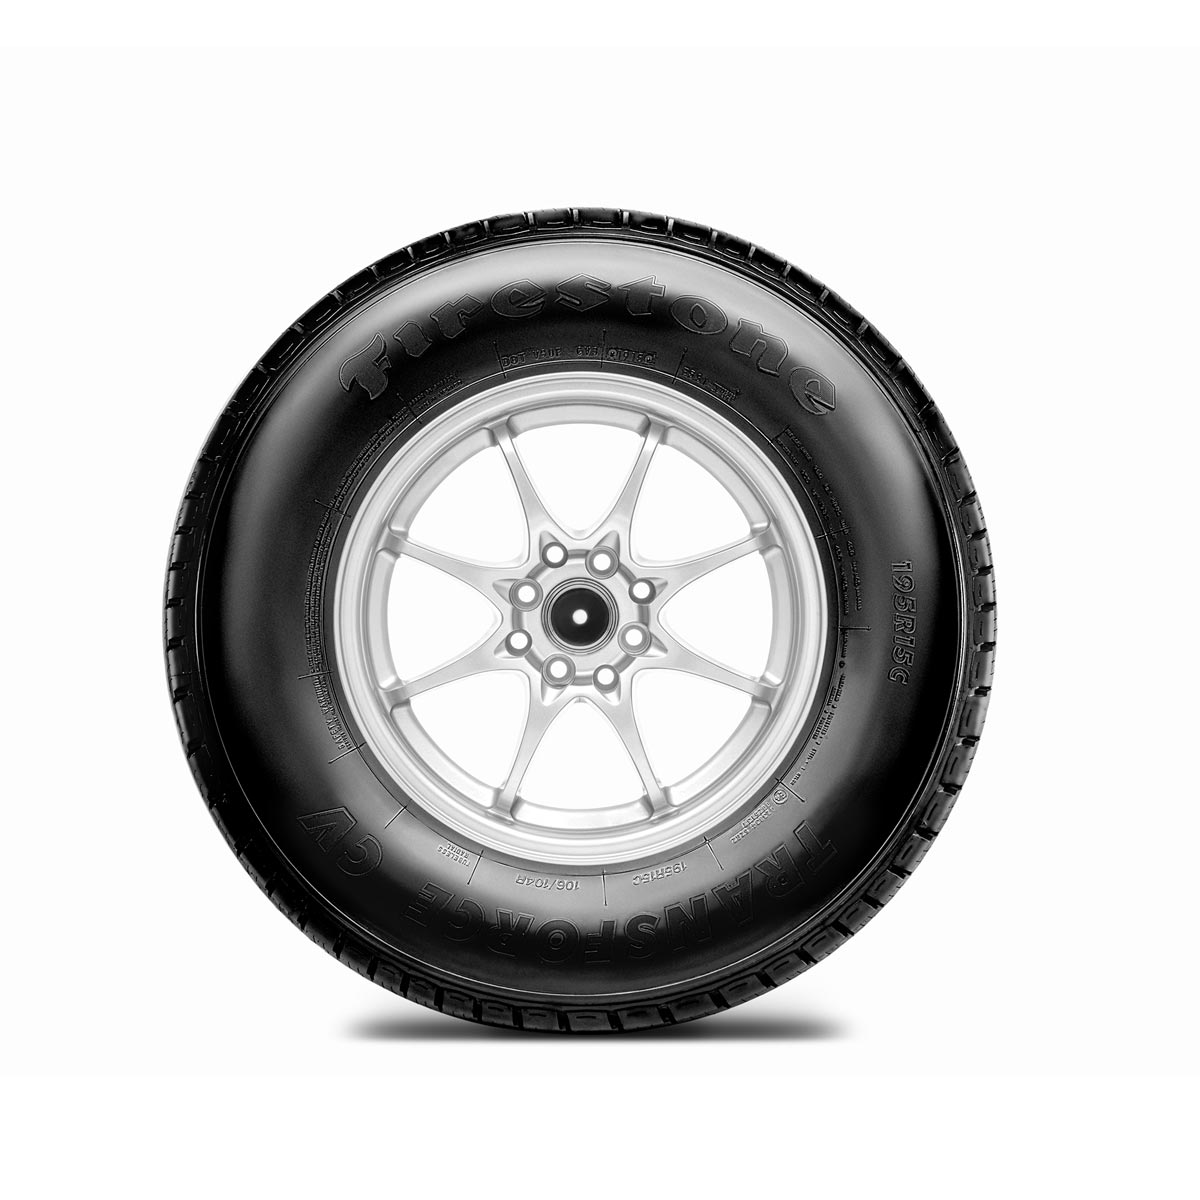 Firestone Transforce CV